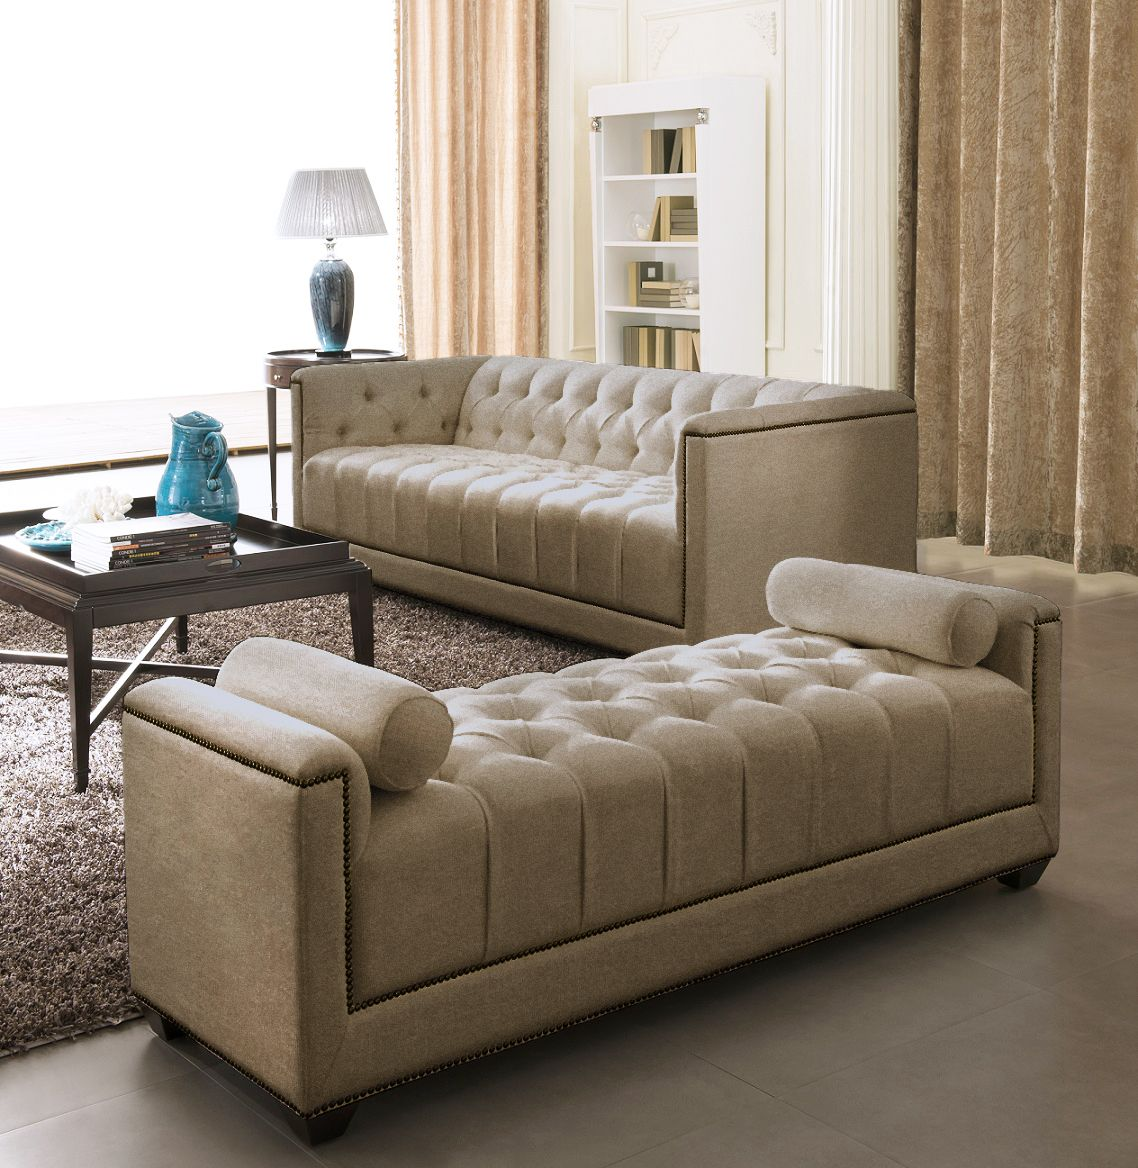 modern sofa set designs for living room | Living room sofa ...